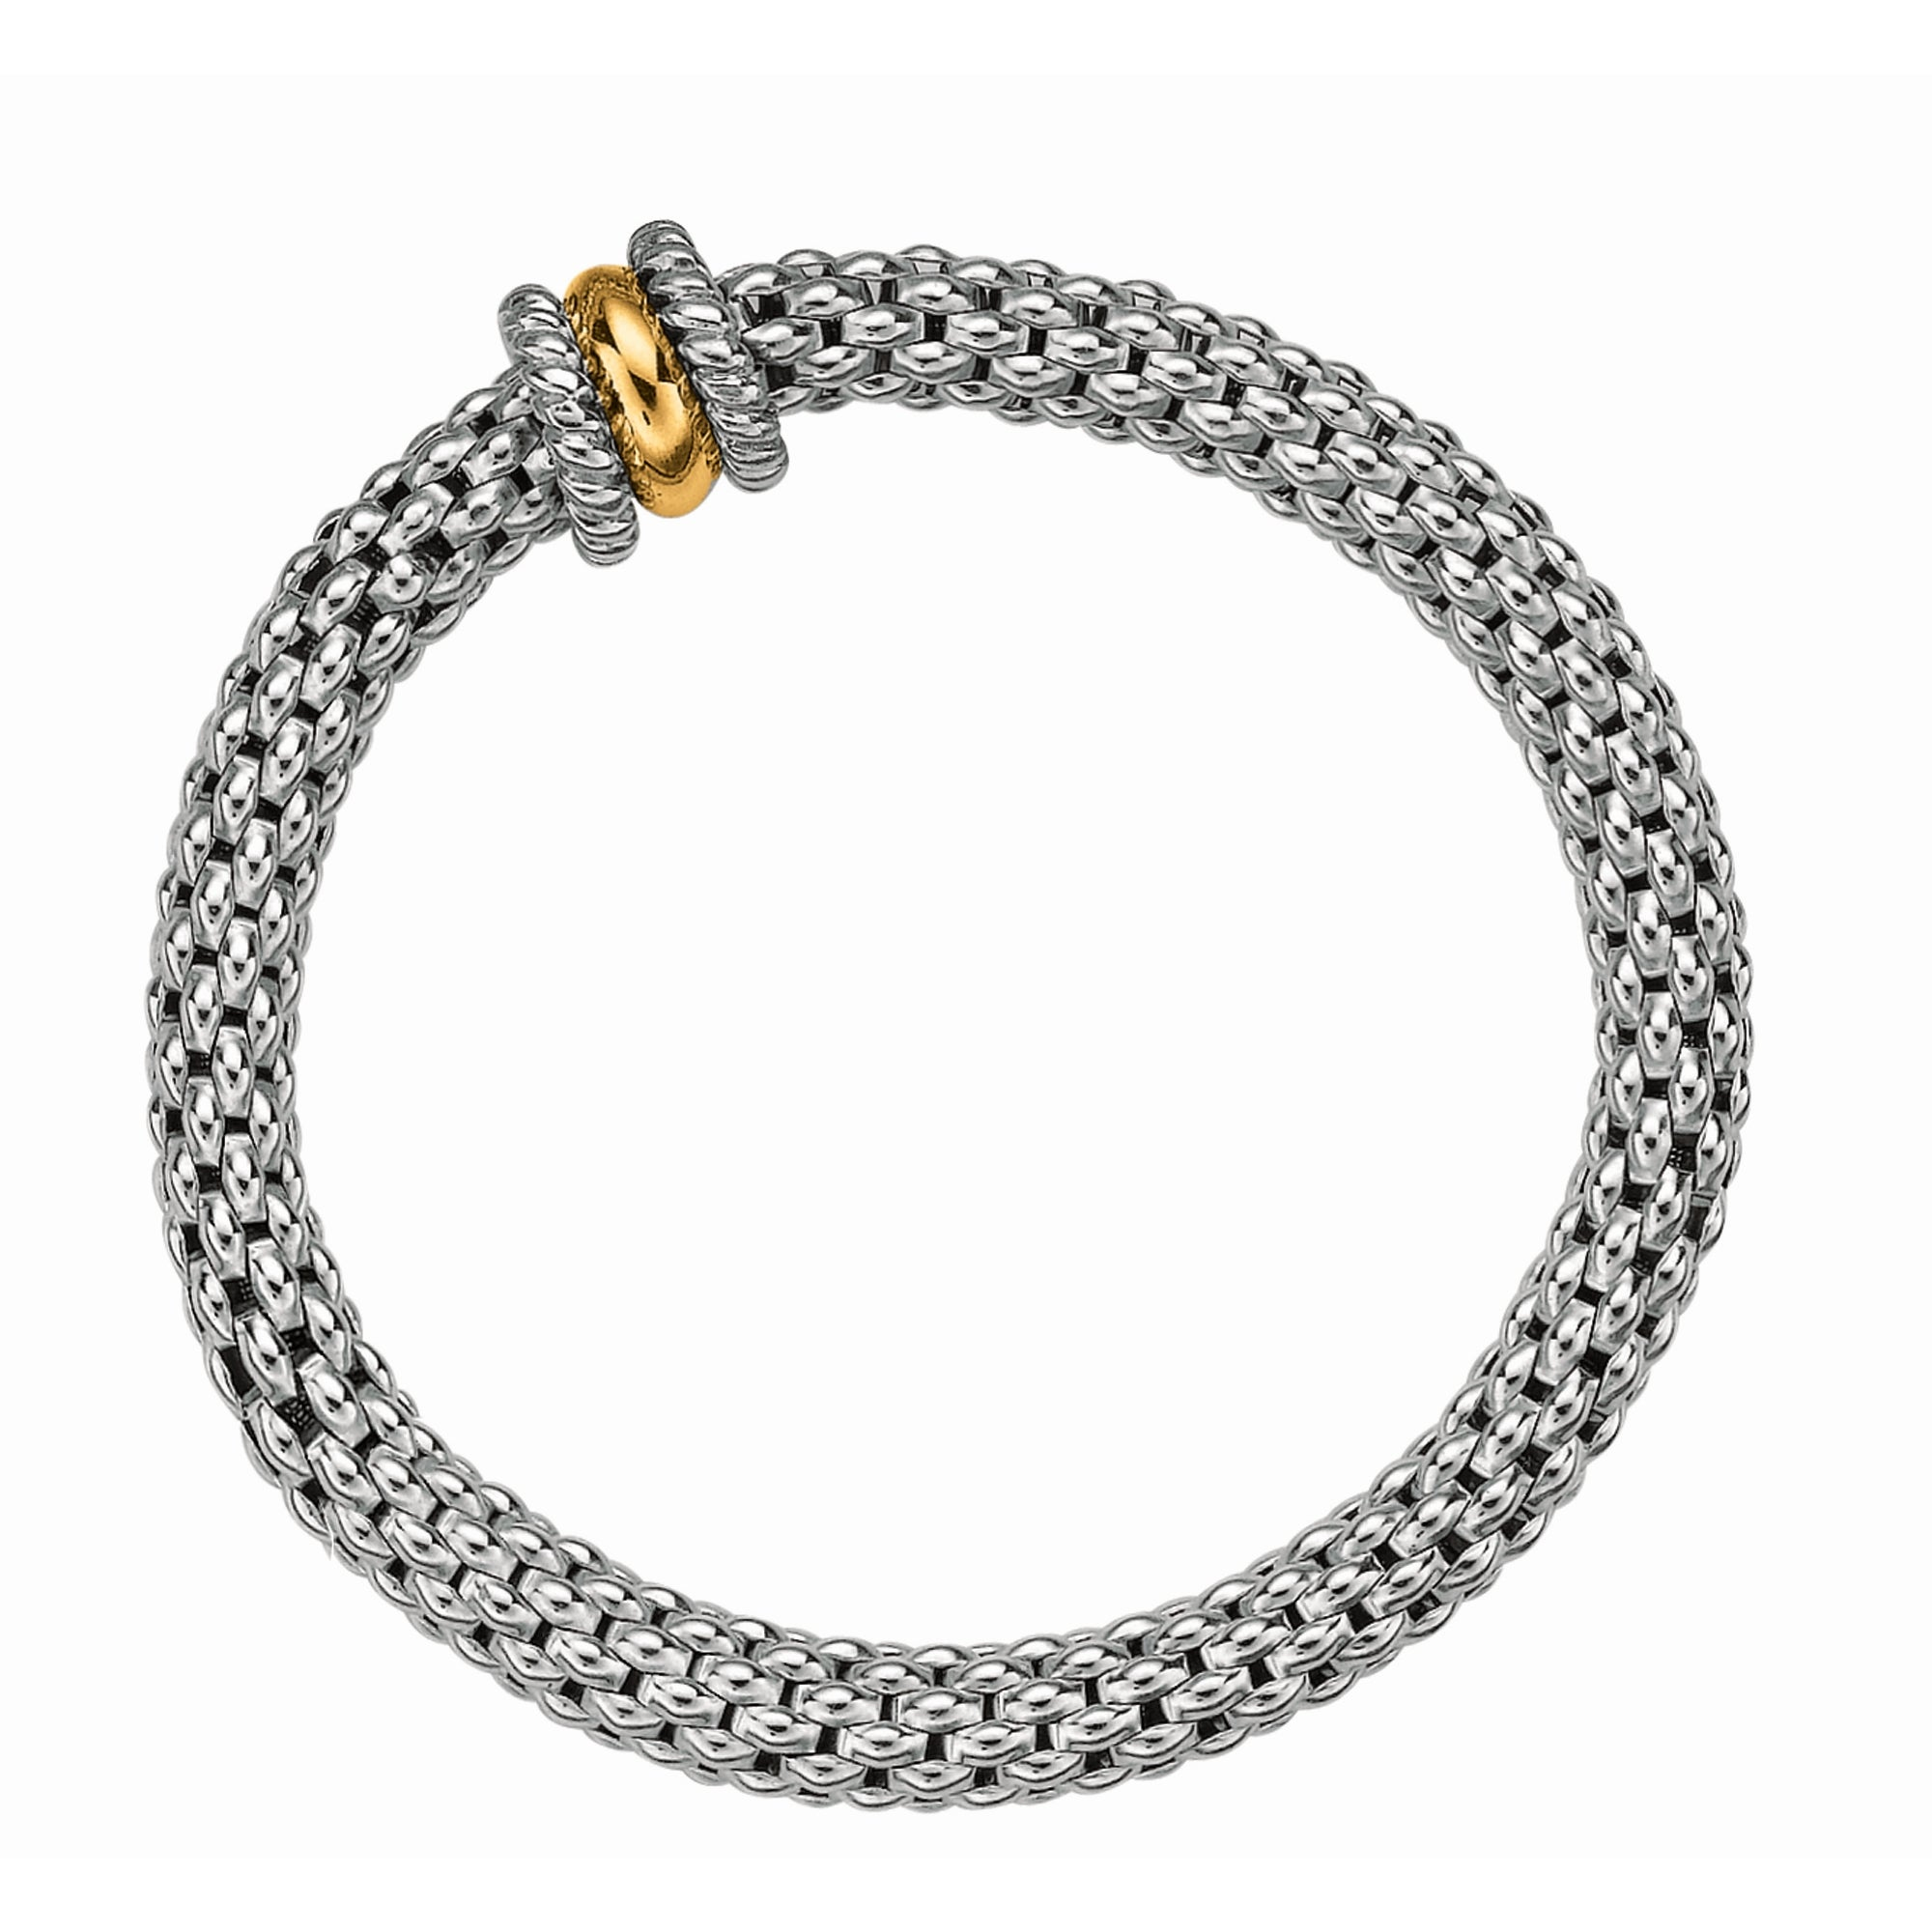 Phillip Gavriel 18K Yellow Gold & Sterling Silver Bracelet